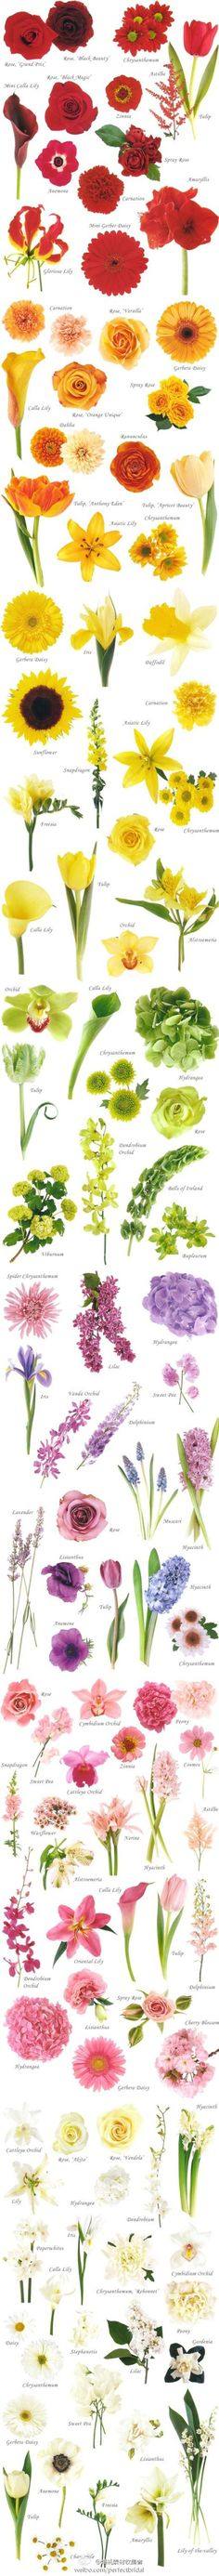 Choosing flowers for a special occasions can be challenging with all the flower choices available today. If you don't know what you want, take a look at this flower chart. It's a handy reference guide to the most commonly used flowers in the cut flower industry and is organized by colour. Or you can use…